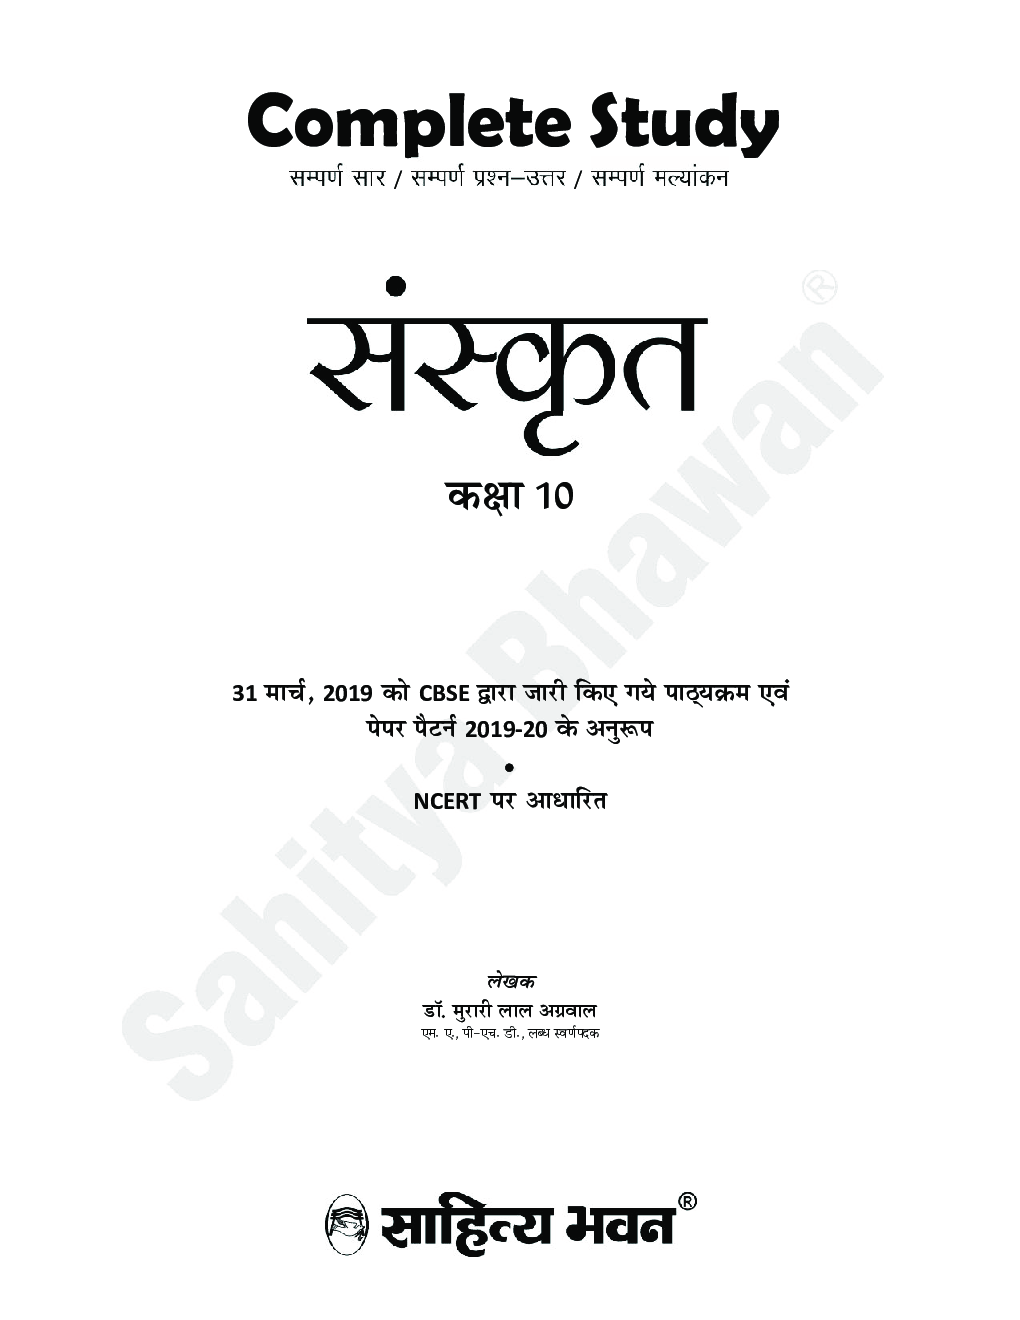 CBSE Complete Study Sanskrit For Class - X - Page 2